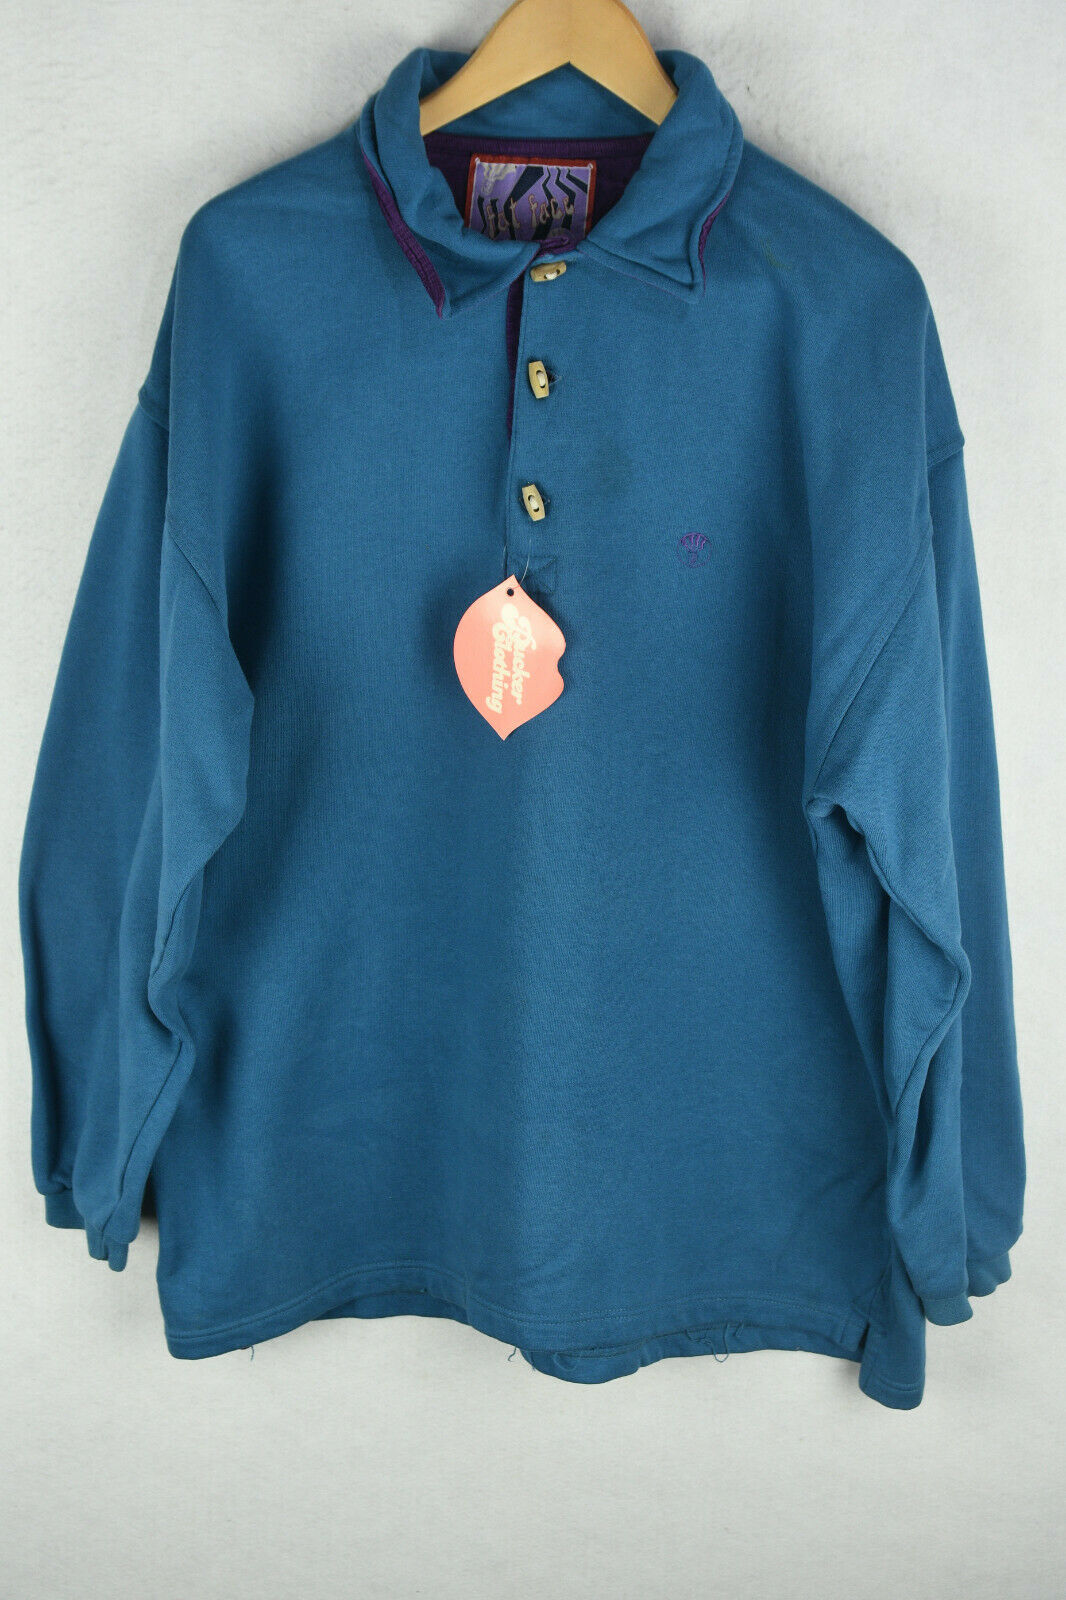 FAT FACE Mens POLO Sweatshirt VINTAGE MOUNTAIN CLIMBER Sweater Large P53